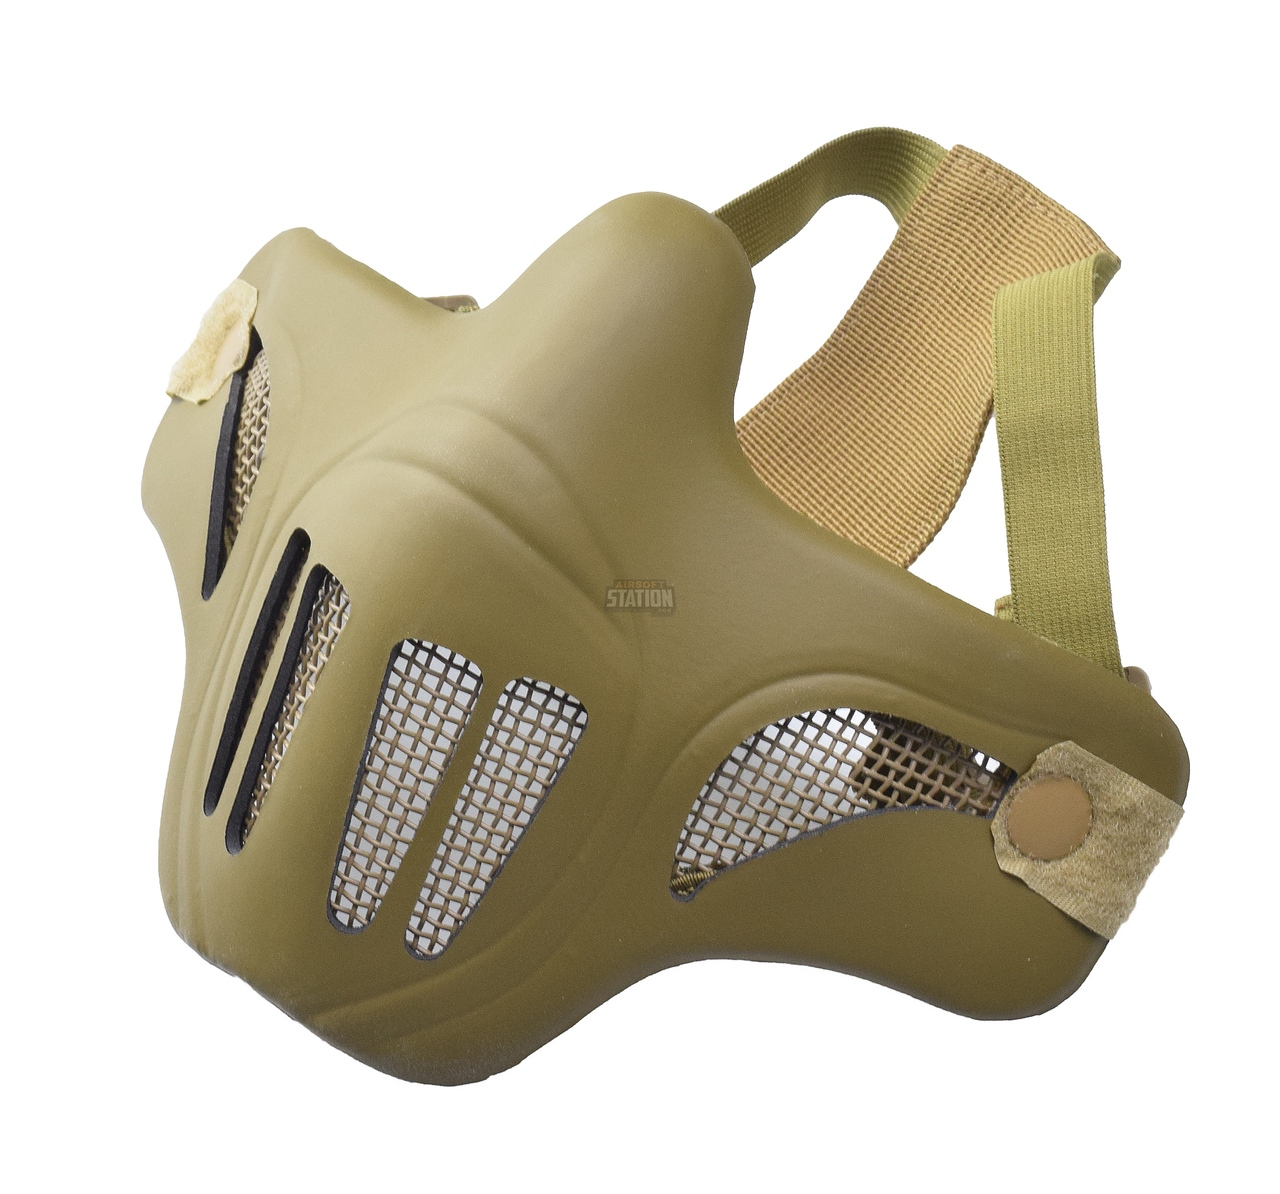 Ghost Recon Style Steel Mesh Half Face Mask for Airsoft, Tan | eBay